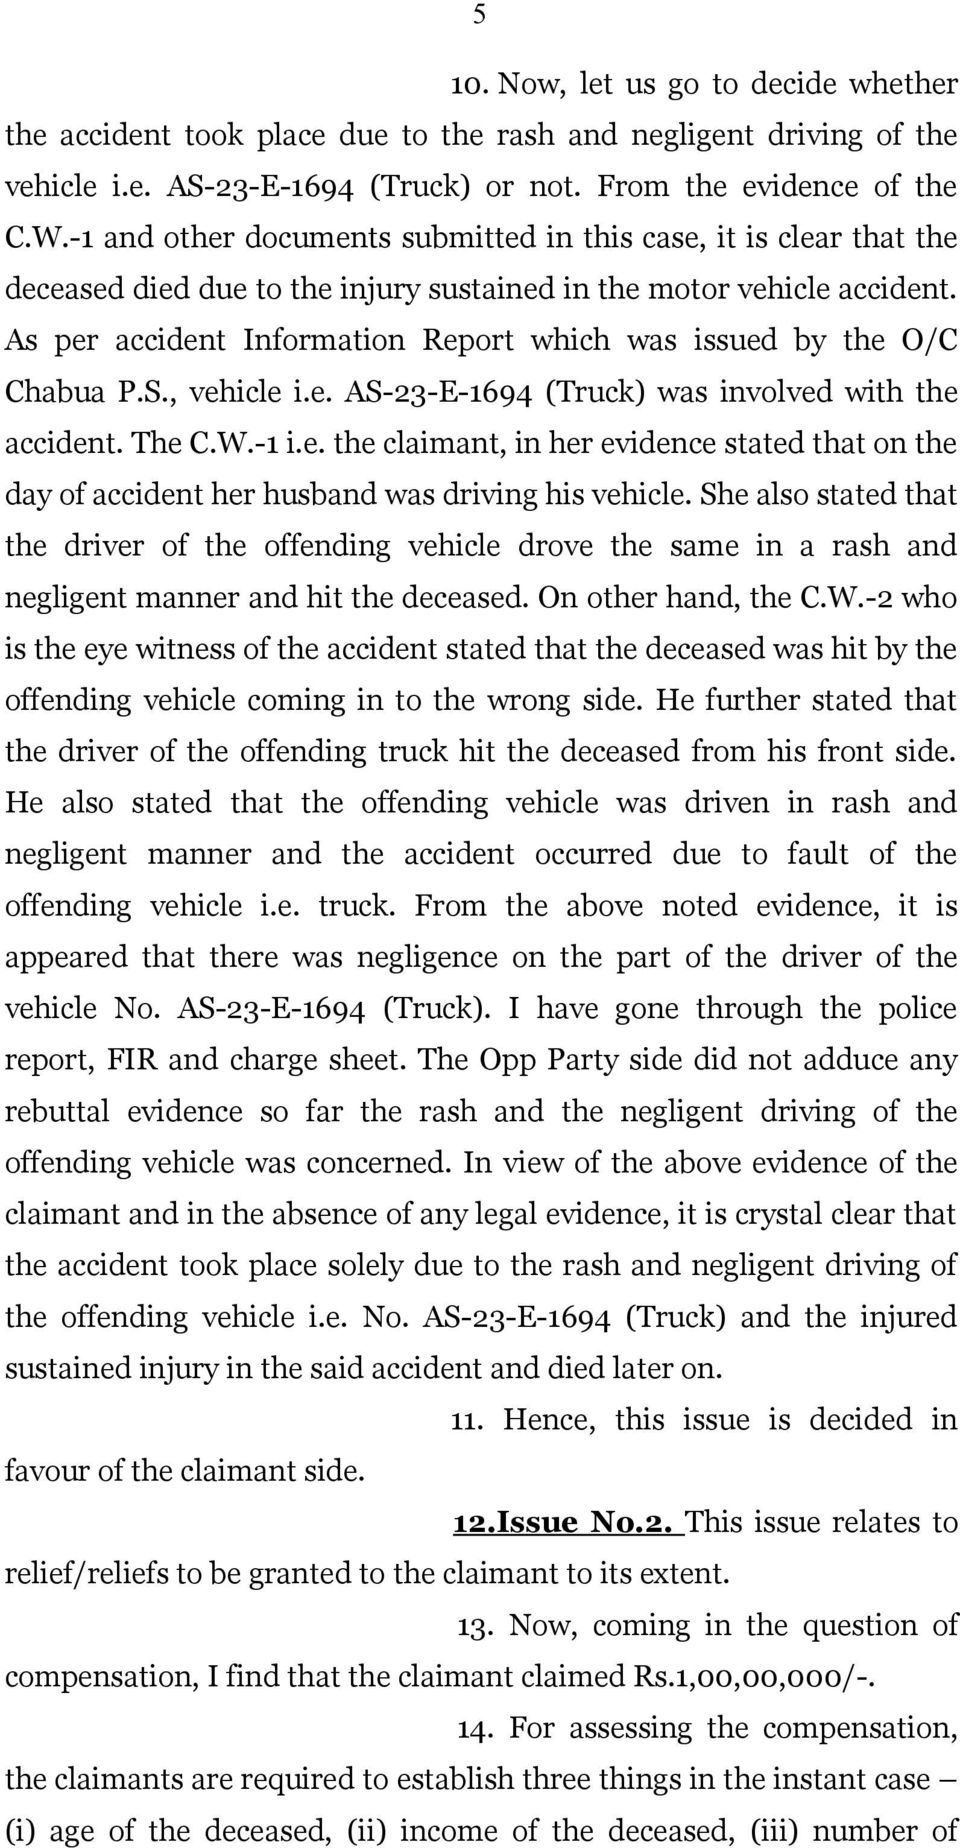 As per accident Information Report which was issued by the O/C Chabua P.S., vehicle i.e. AS-23-E-1694 (Truck) was involved with the accident. The C.W.-1 i.e. the claimant, in her evidence stated that on the day of accident her husband was driving his vehicle.